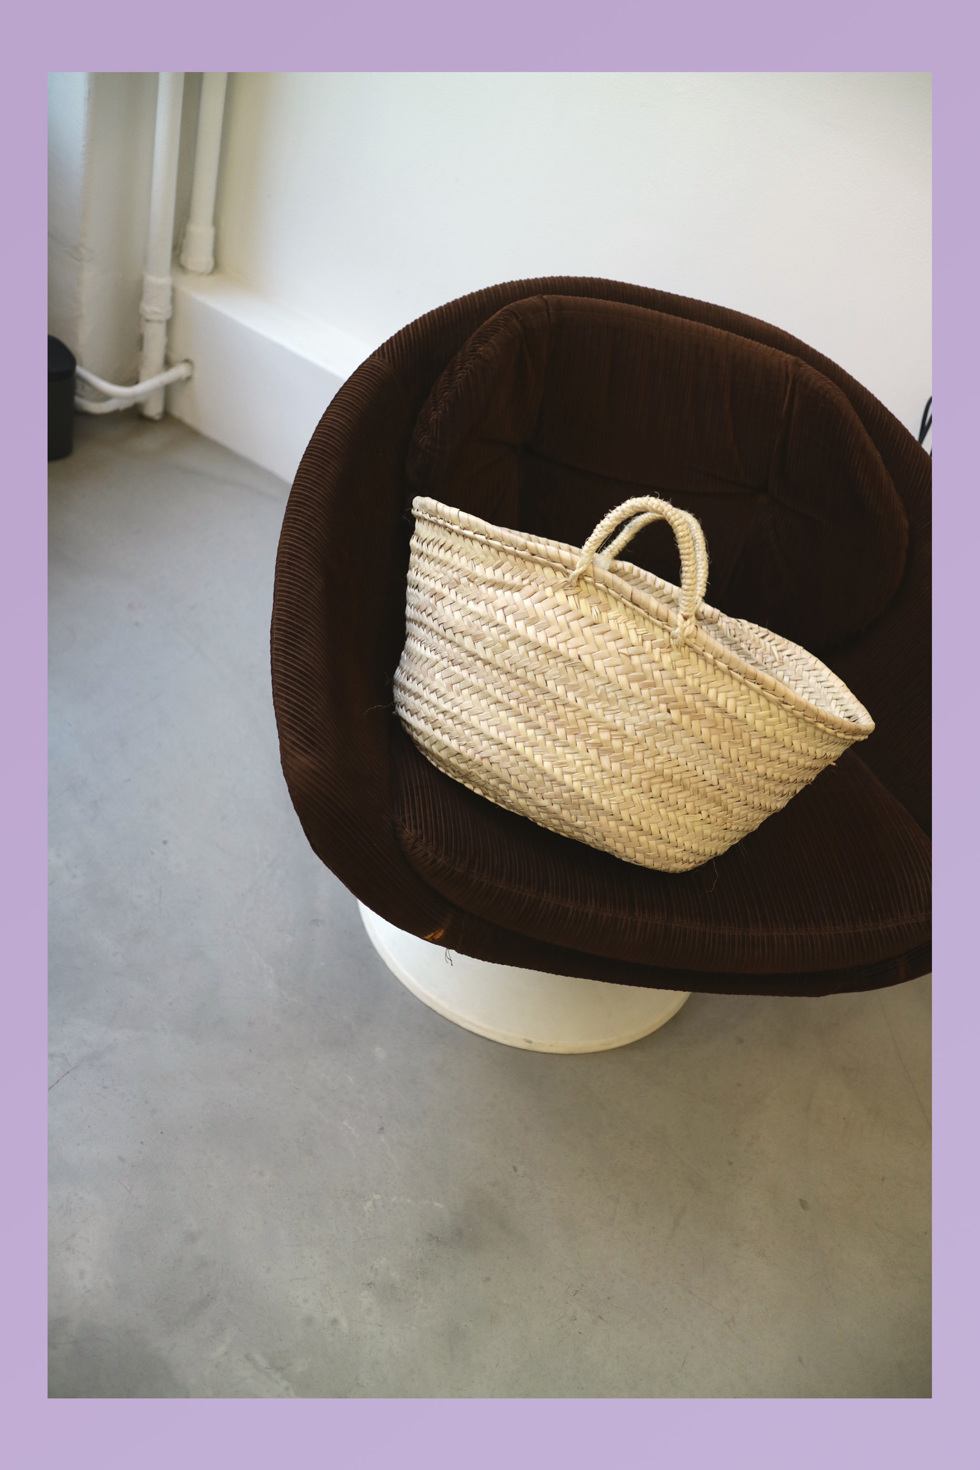 fanny-ekstrand-basket-straw-bag